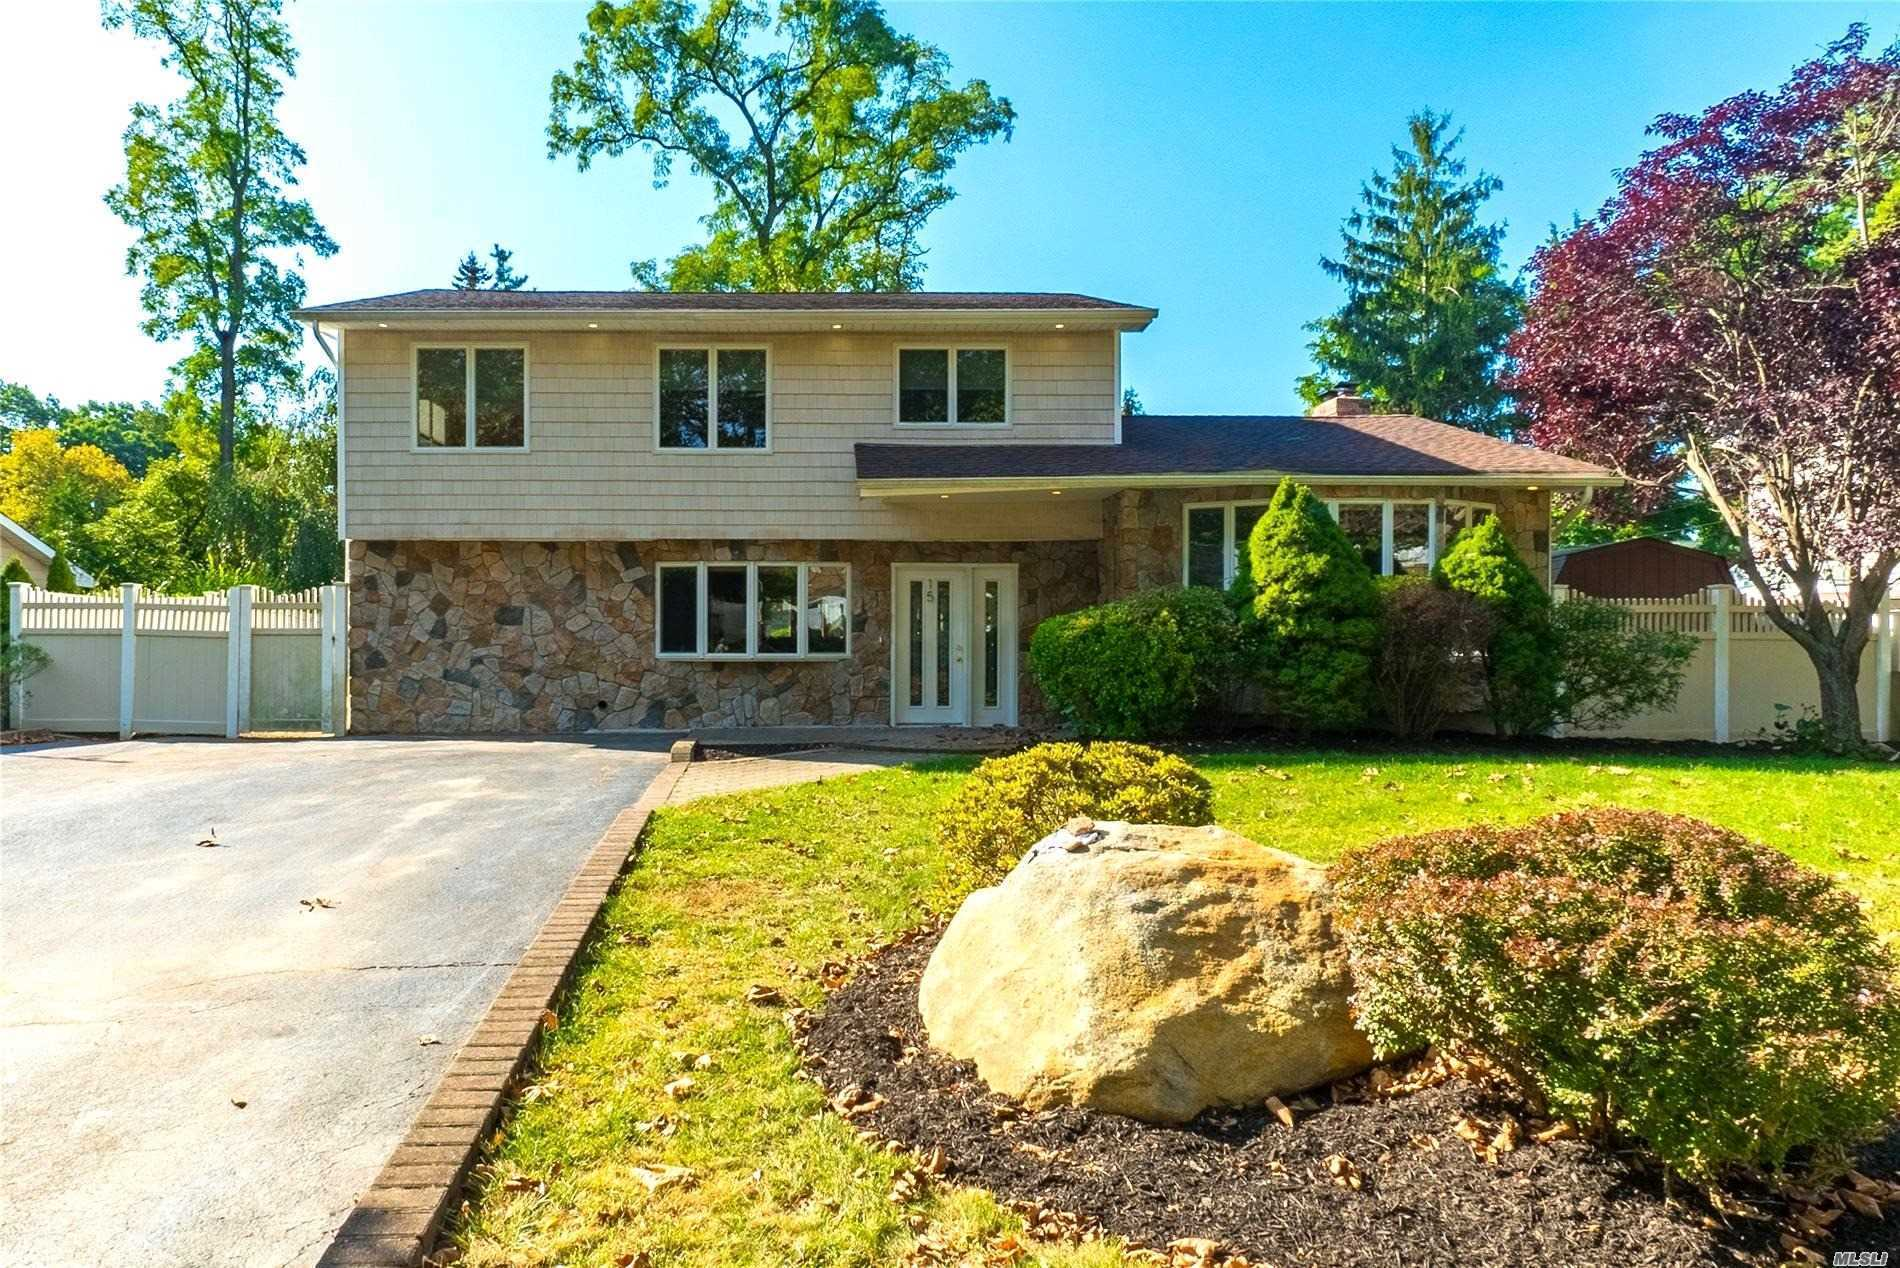 15 Stonywood Dr - Commack, New York